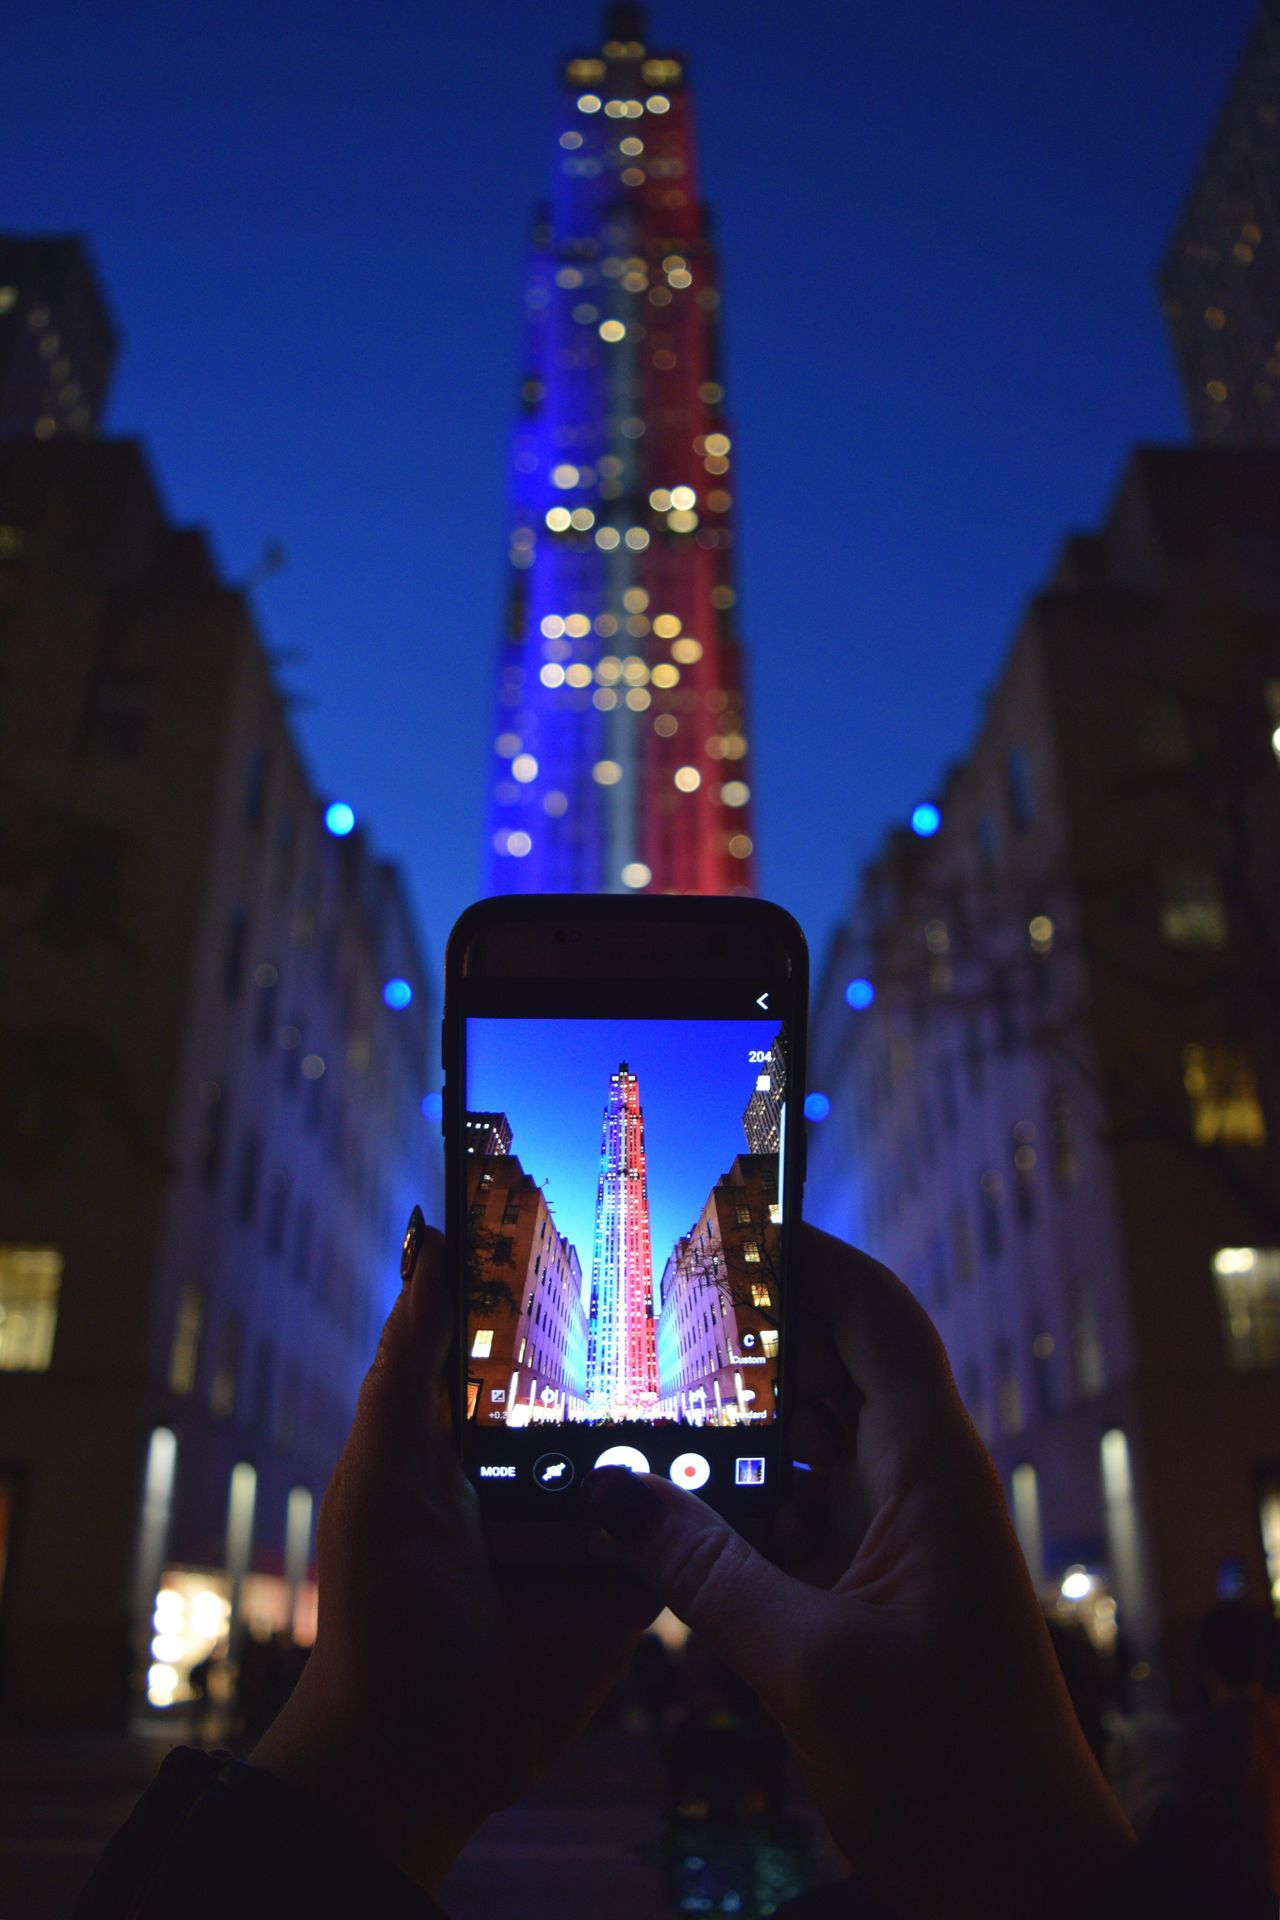 Through The Phone Throughmyphone Night Colors Topoftherock Nikon D3300 Top Of The Rock NYC New York City Night Lights Shutter Speed Lighttrails Light Trails Light Trail NYC Street Nightphotography Night Photography NYC NYC Street Photography NYC Photography Red White And Blue Rockerfellercenter Redwhiteandblue (null)Low Angle View Top Of The Rock